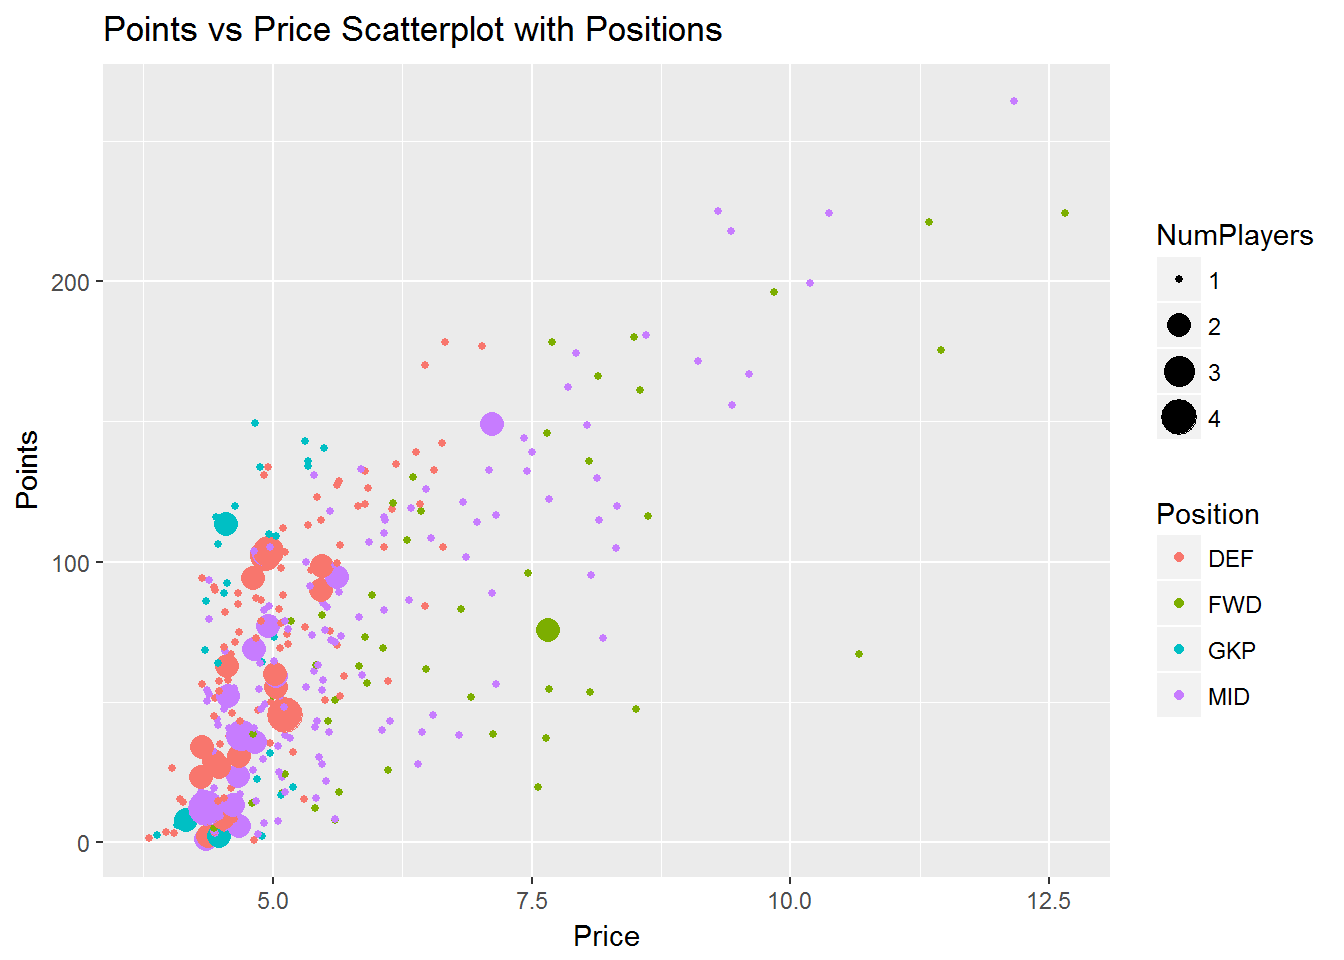 Premier League Fantasy Data Analysis in R – Feathers Analytics